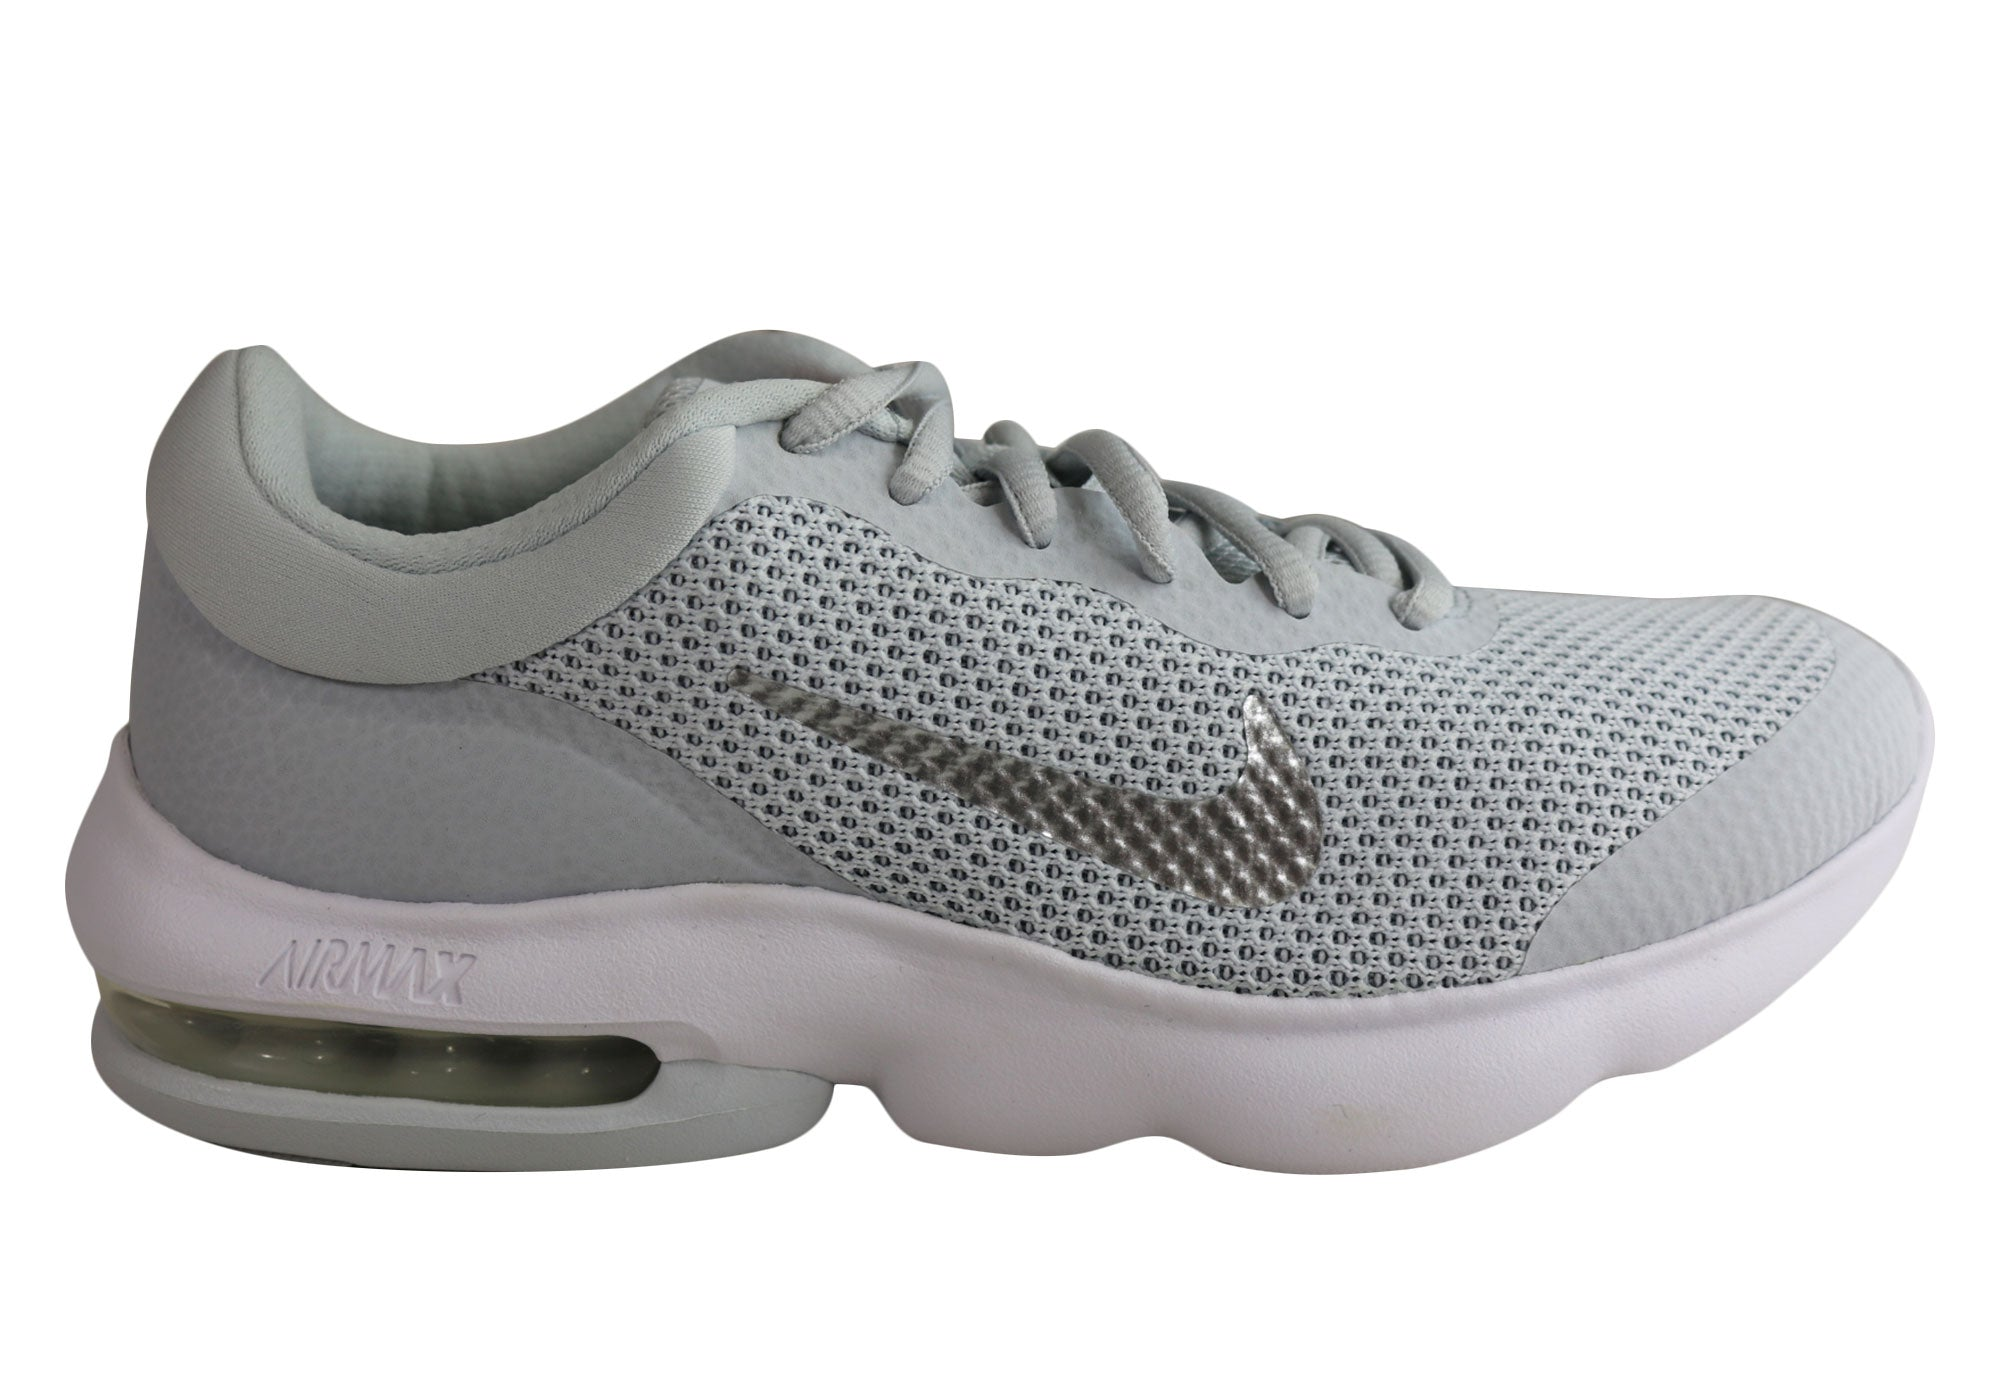 59f8115cf5 Nike Womens Air Max Advantage Trainers Sport Shoes   Brand House Direct